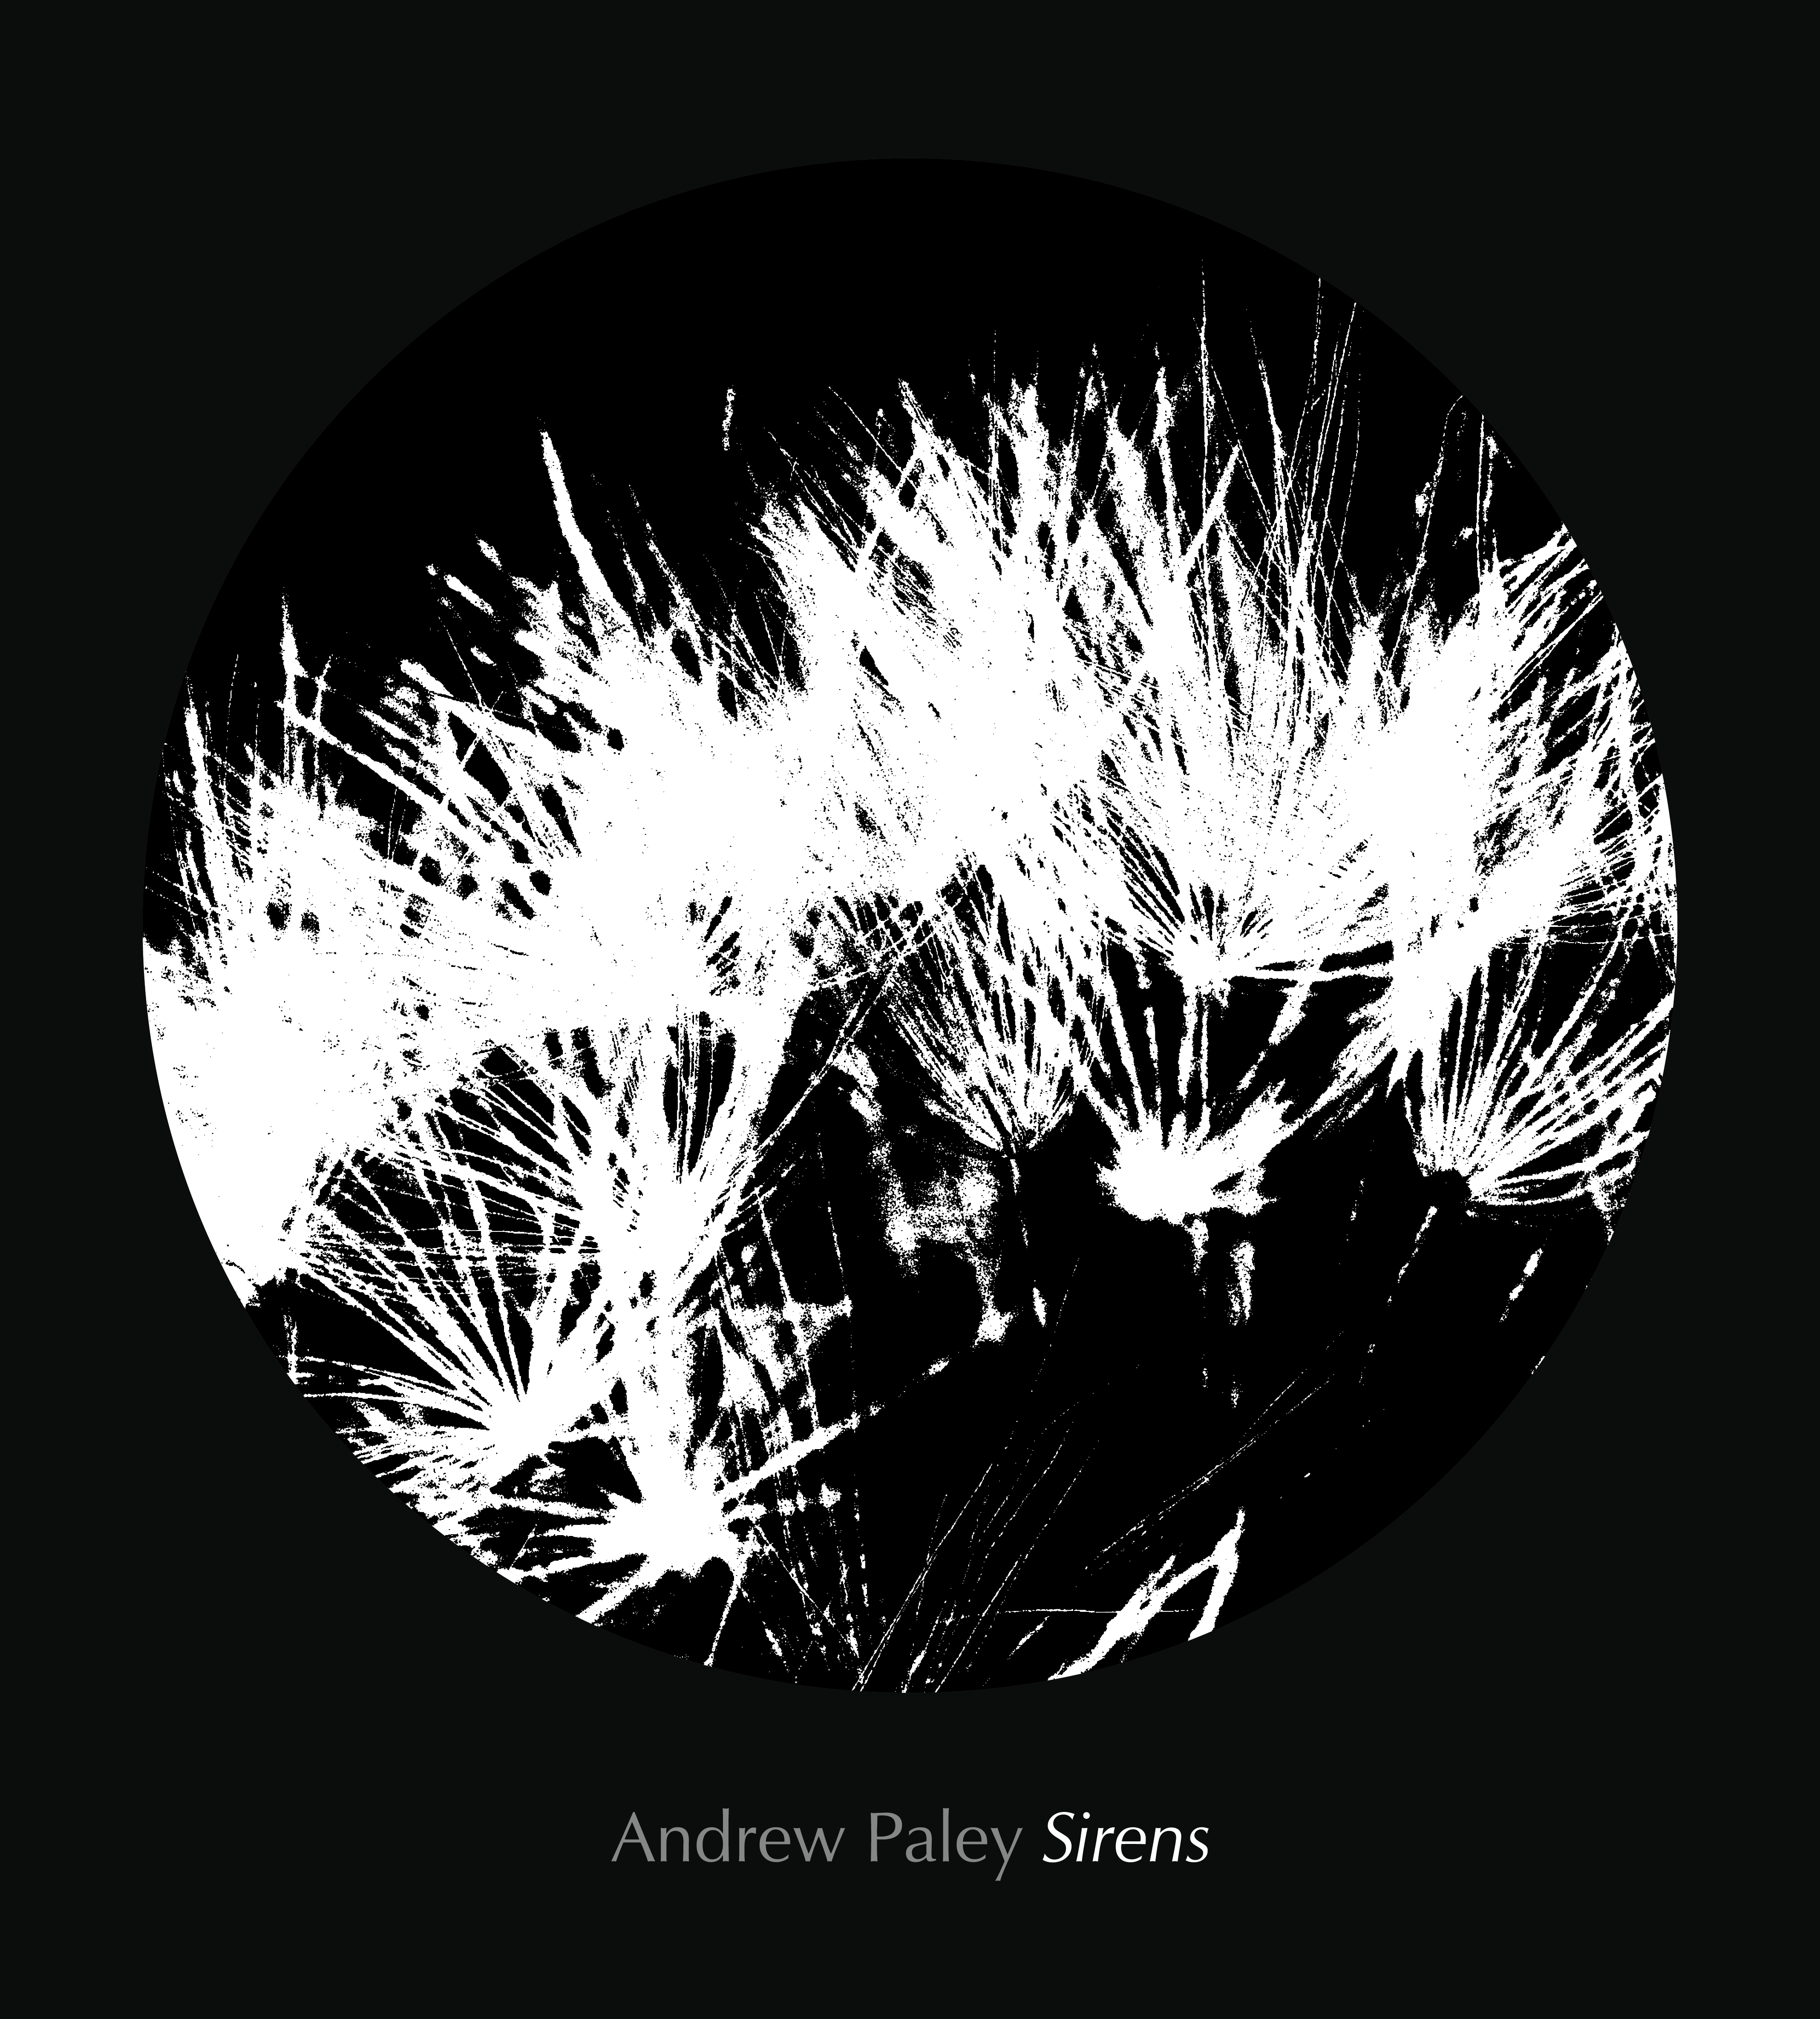 [JUST ADDED!] Andrew Paley